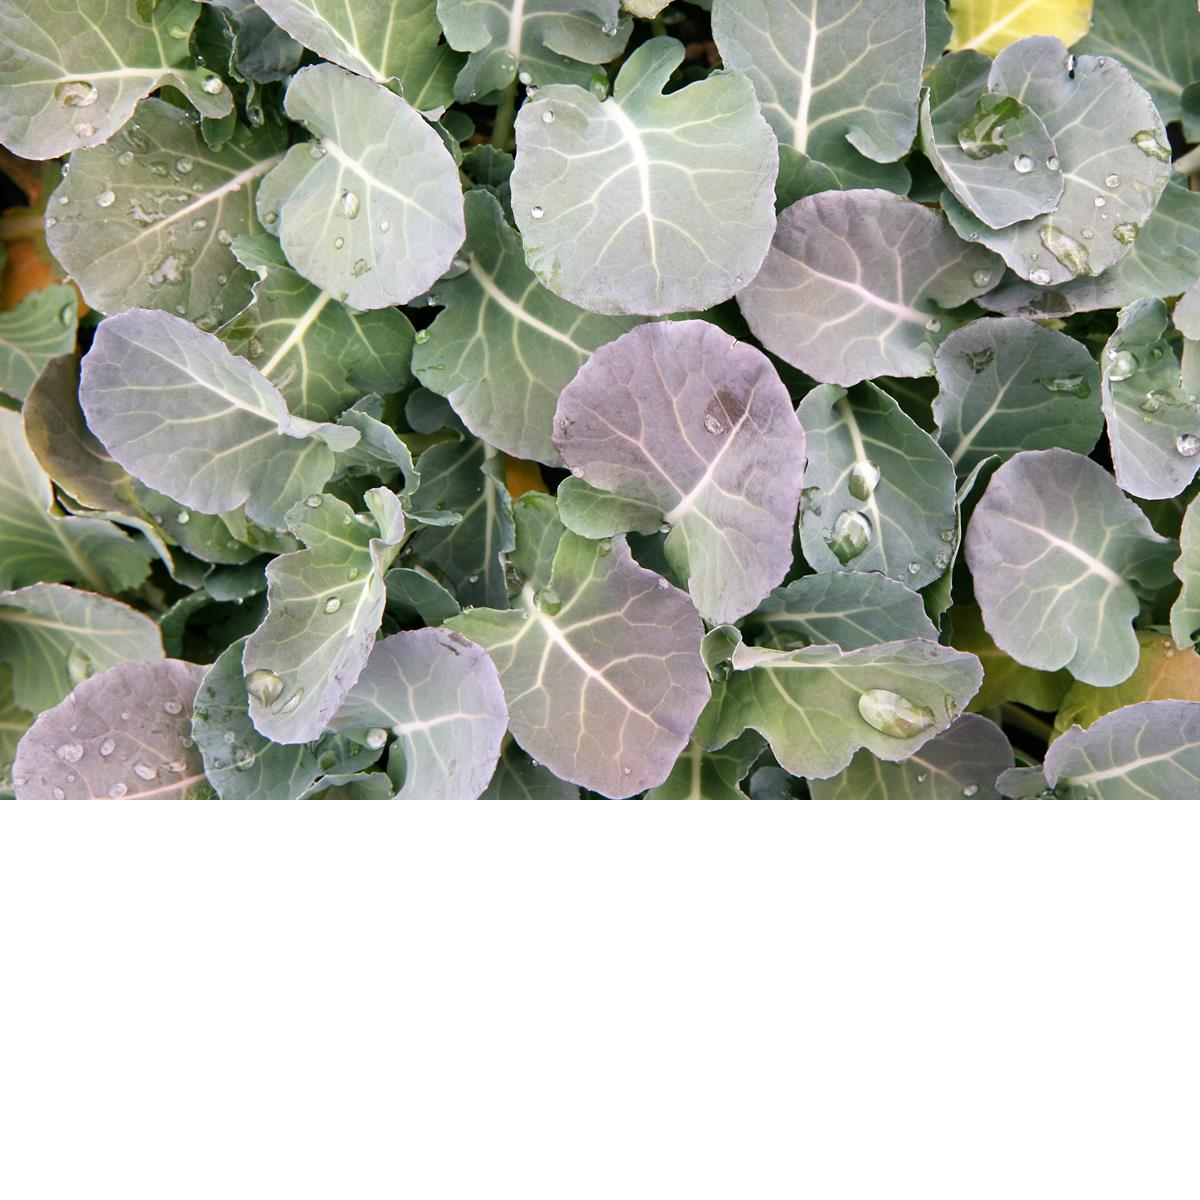 Herb_vegetable_picture